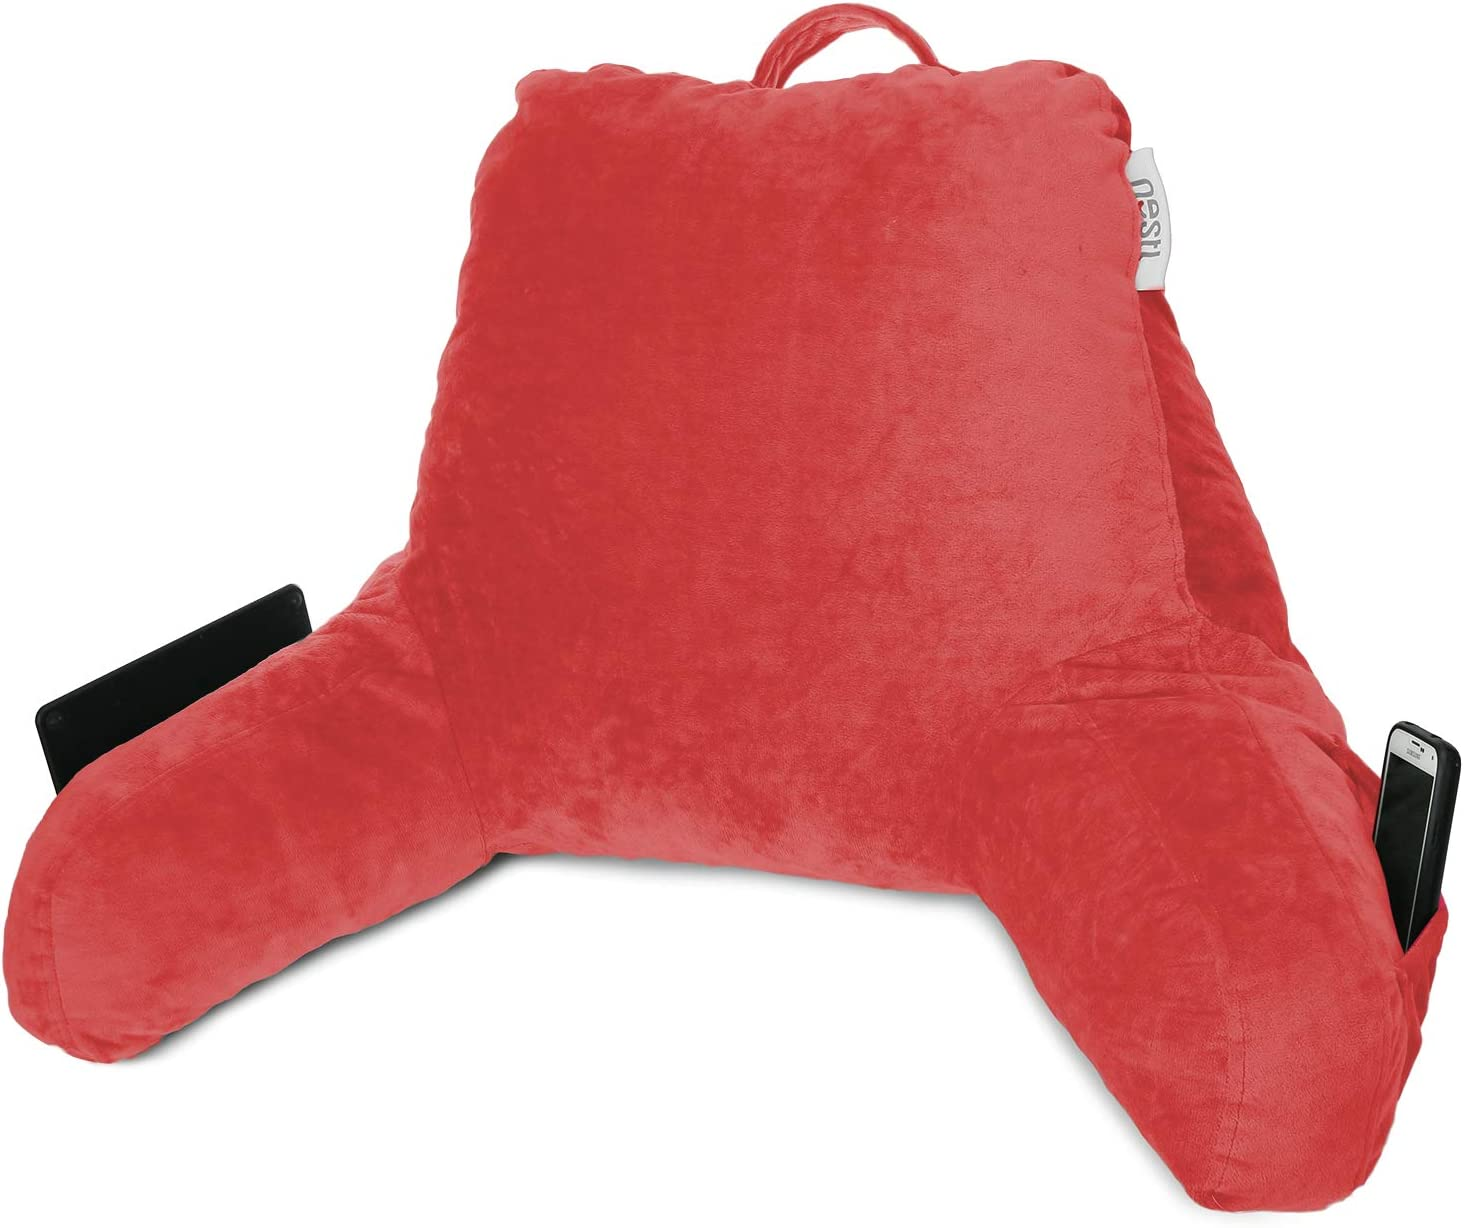 Nestl Reading Pillow, Petite Back Pillow, Backrest Pillows for Bed with Arms, Shredded Memory Foam Back Pillows for Sitting in Bed, Small Back Support Pillow for Kids & Teens, Red: Home & Kitchen